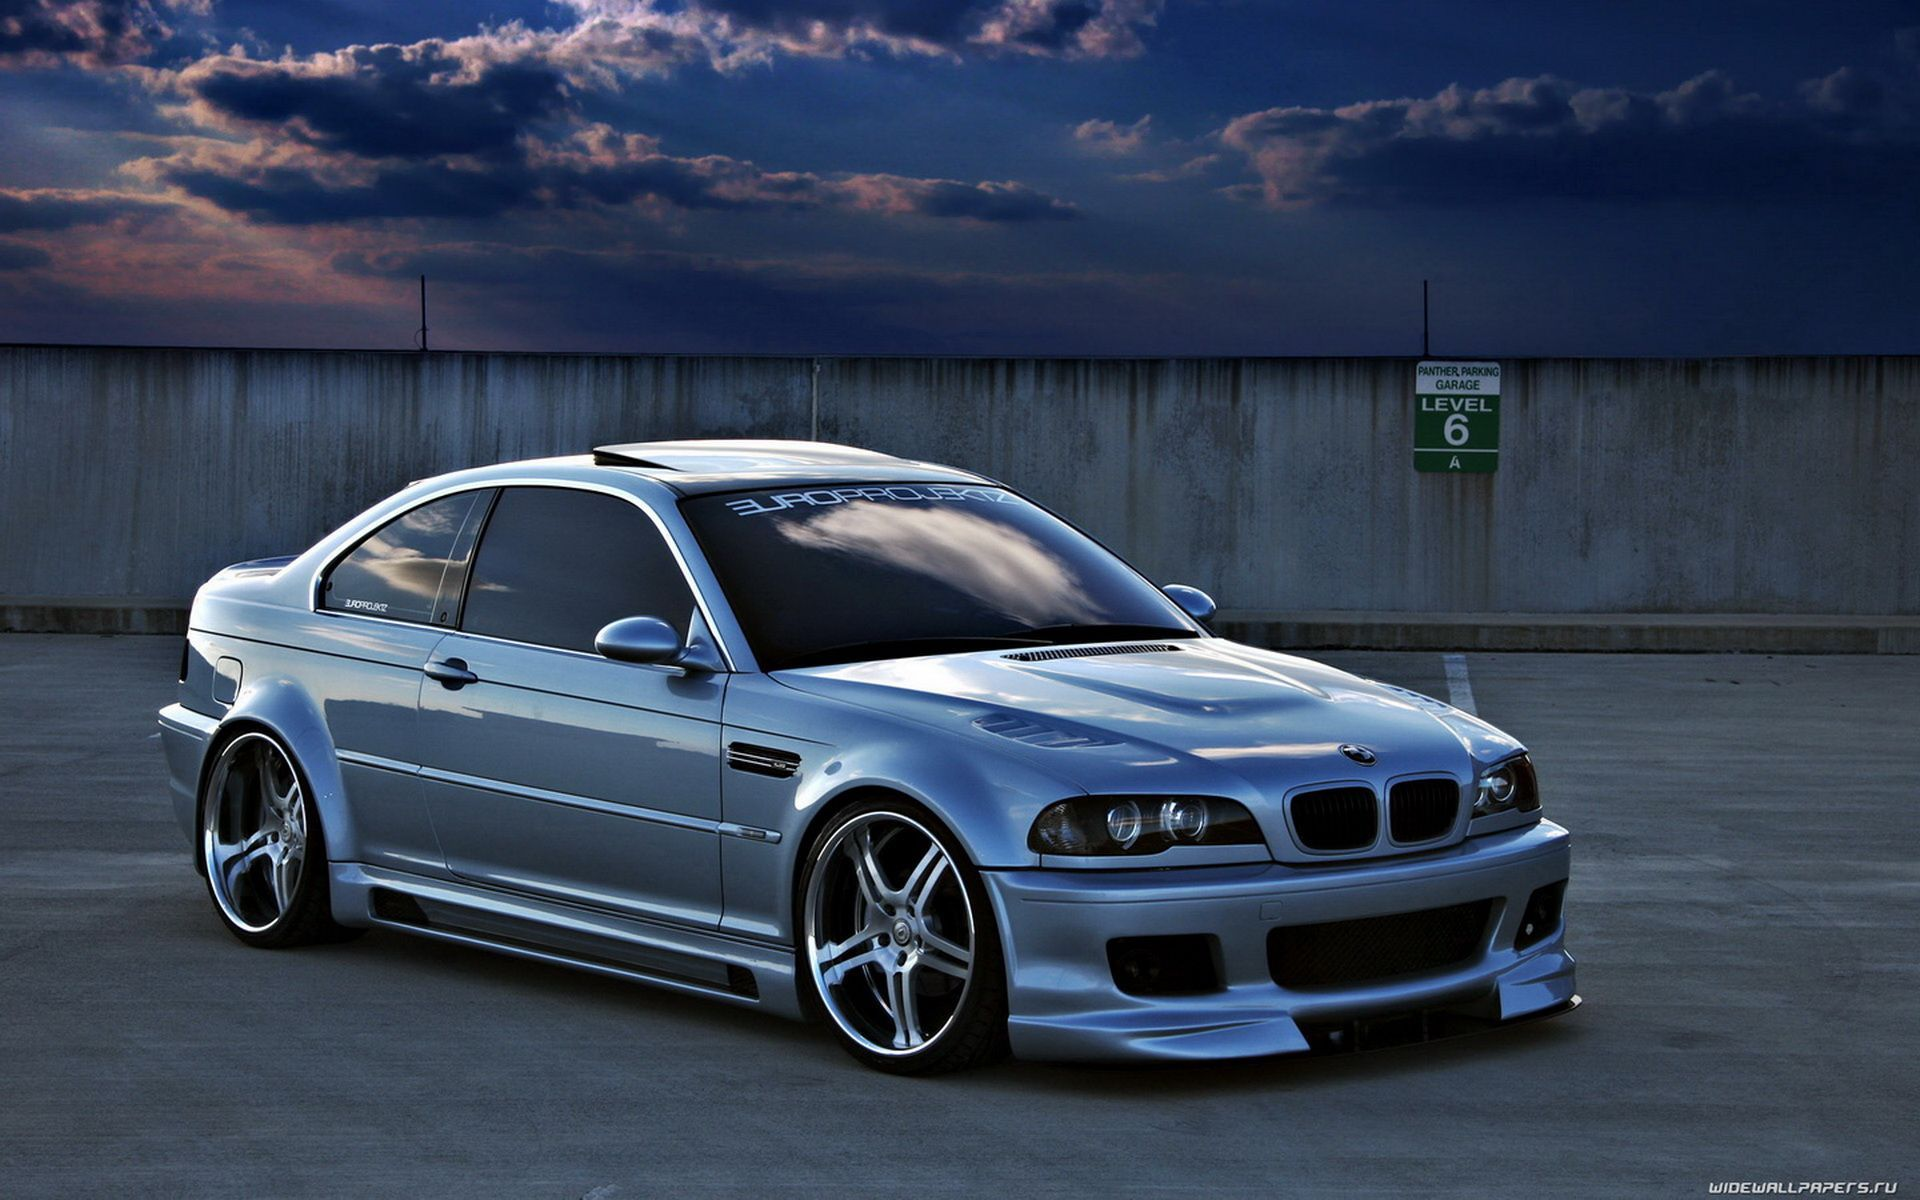 2004 Bmw 325ci Wallpaper With Images Bmw Bmw 325 Bmw Wallpapers